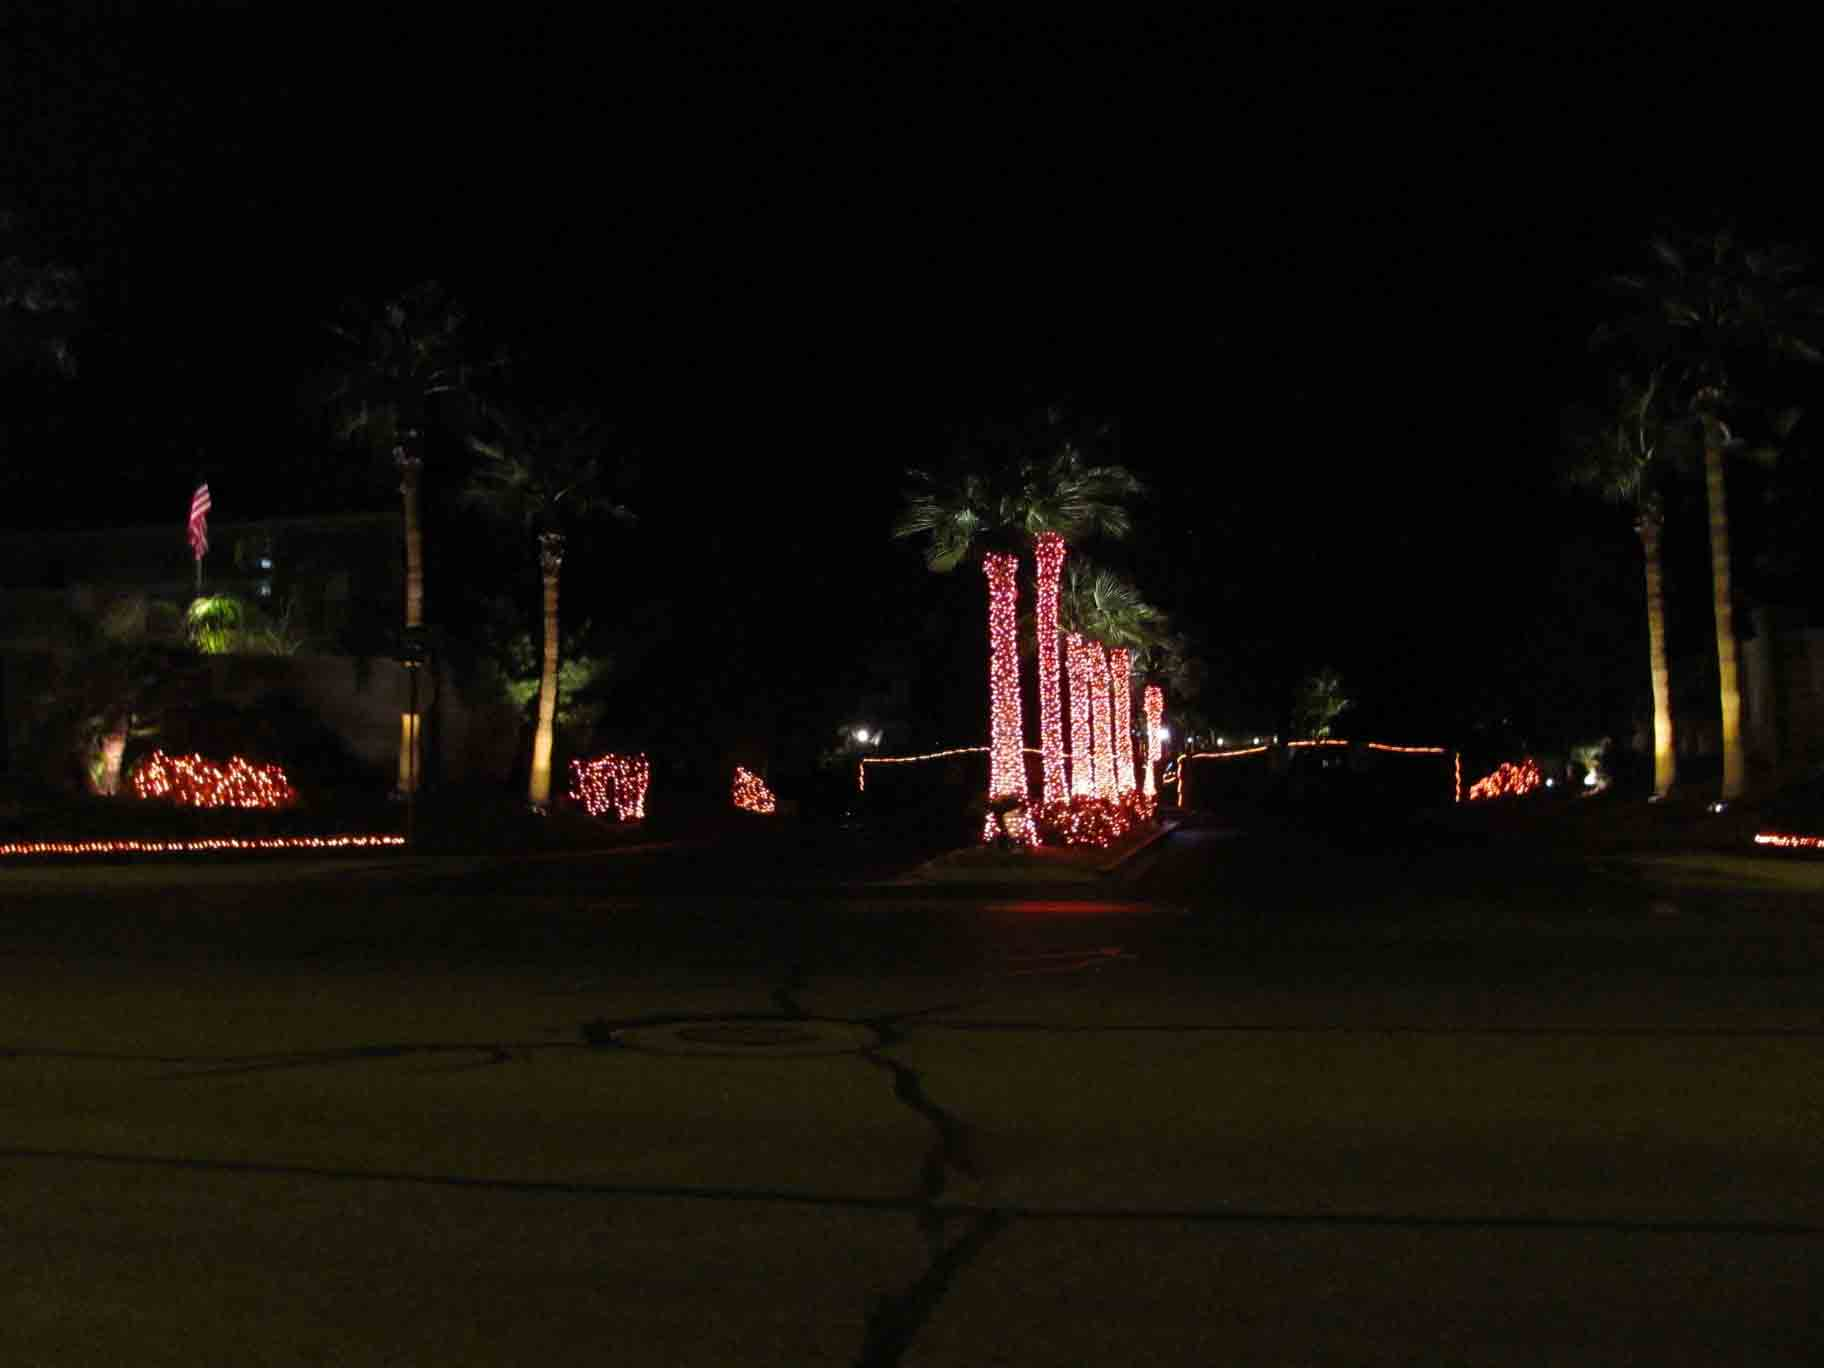 Halloween community lighting service by Holiday Decorations in Las Vegas